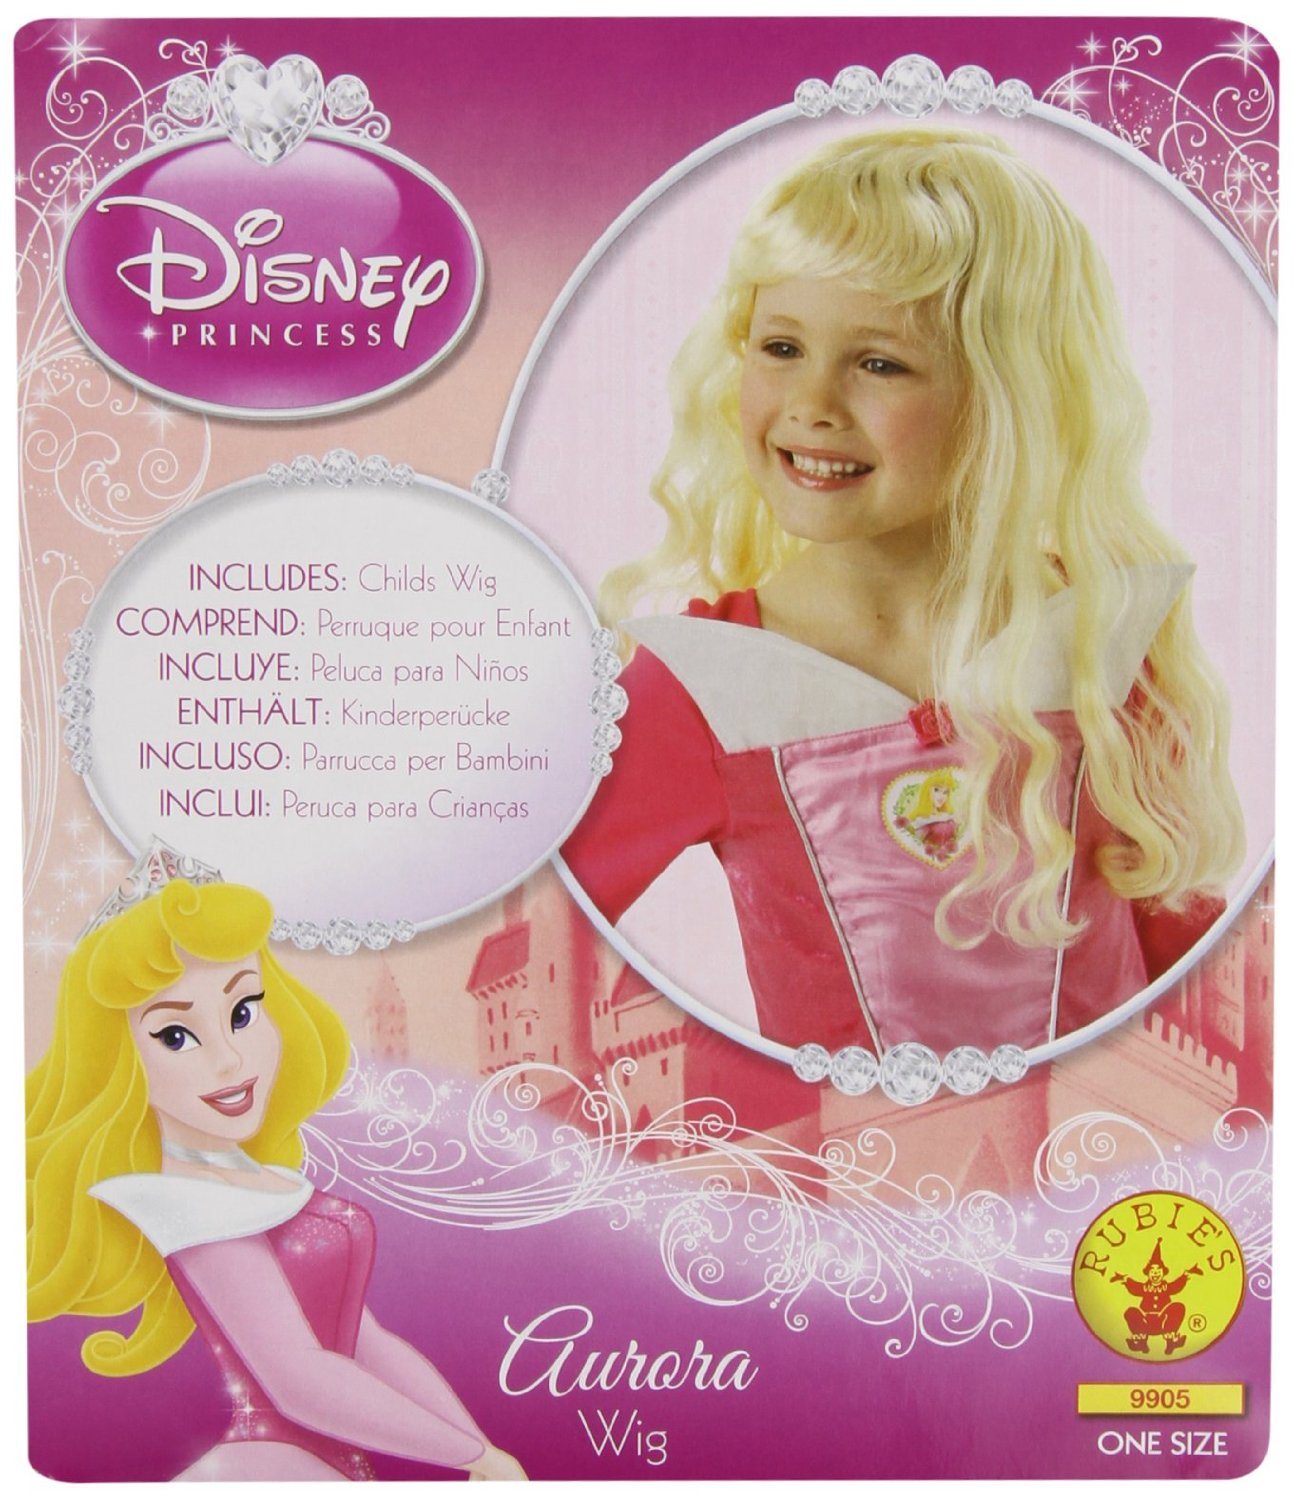 Disney's Sleeping Beauty wig 9905